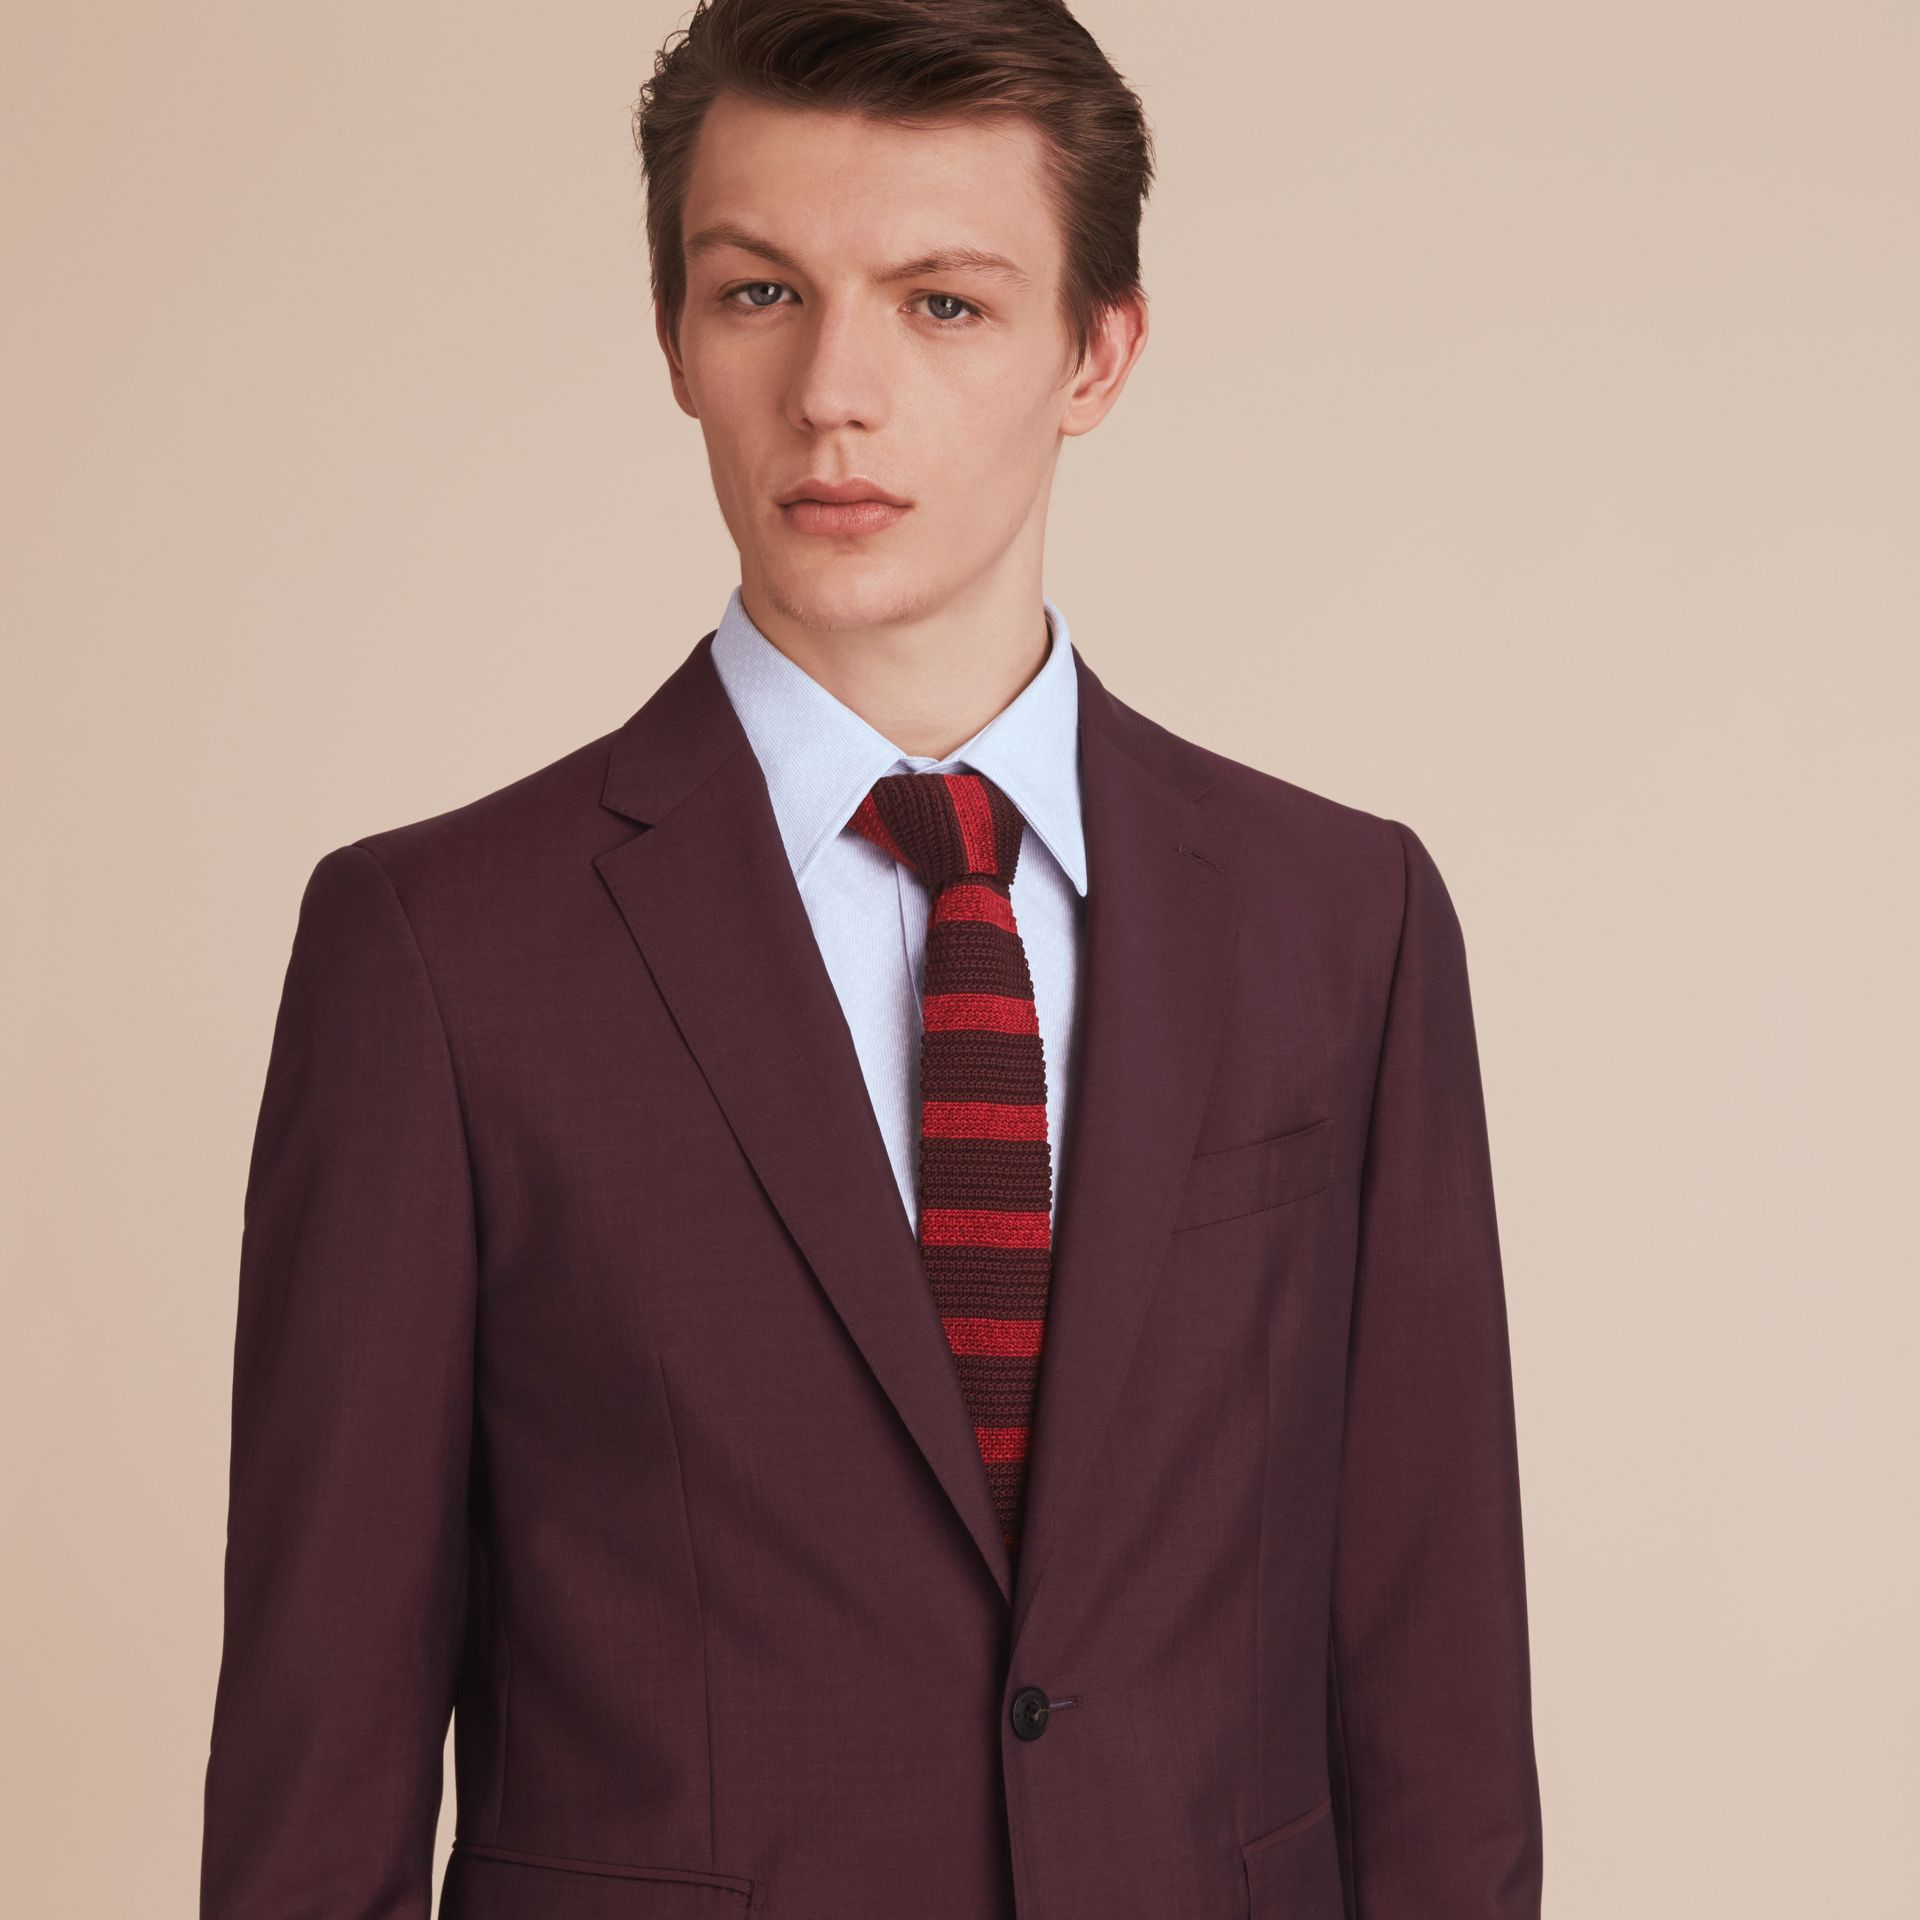 Slim Cut Two-tone Knitted Silk Tie in Burgundy - Men | Burberry - gallery image 3